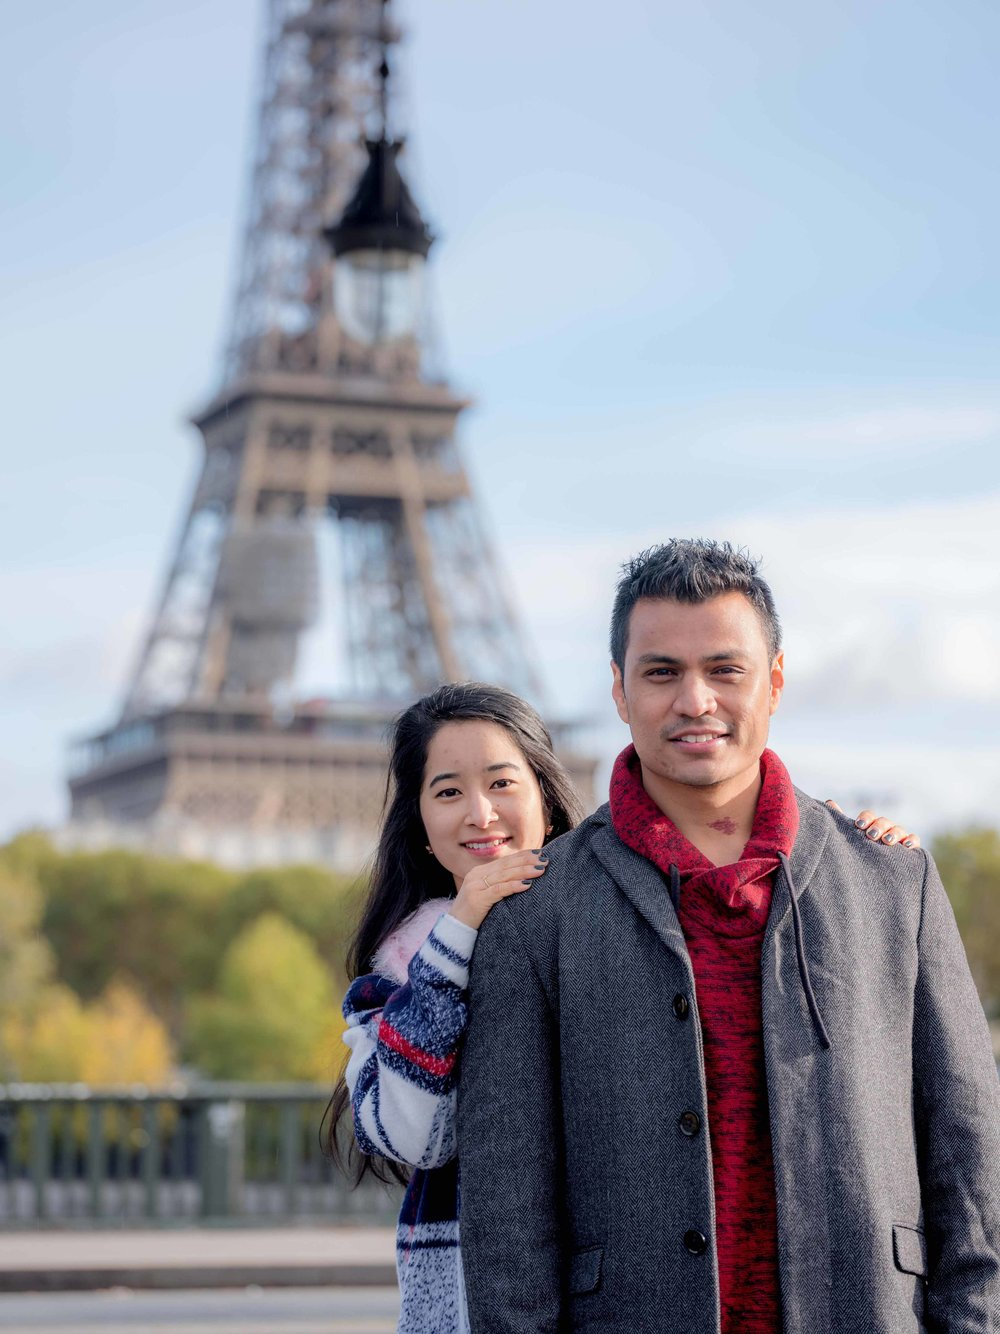 newly engaged couple at eiffel tower paris